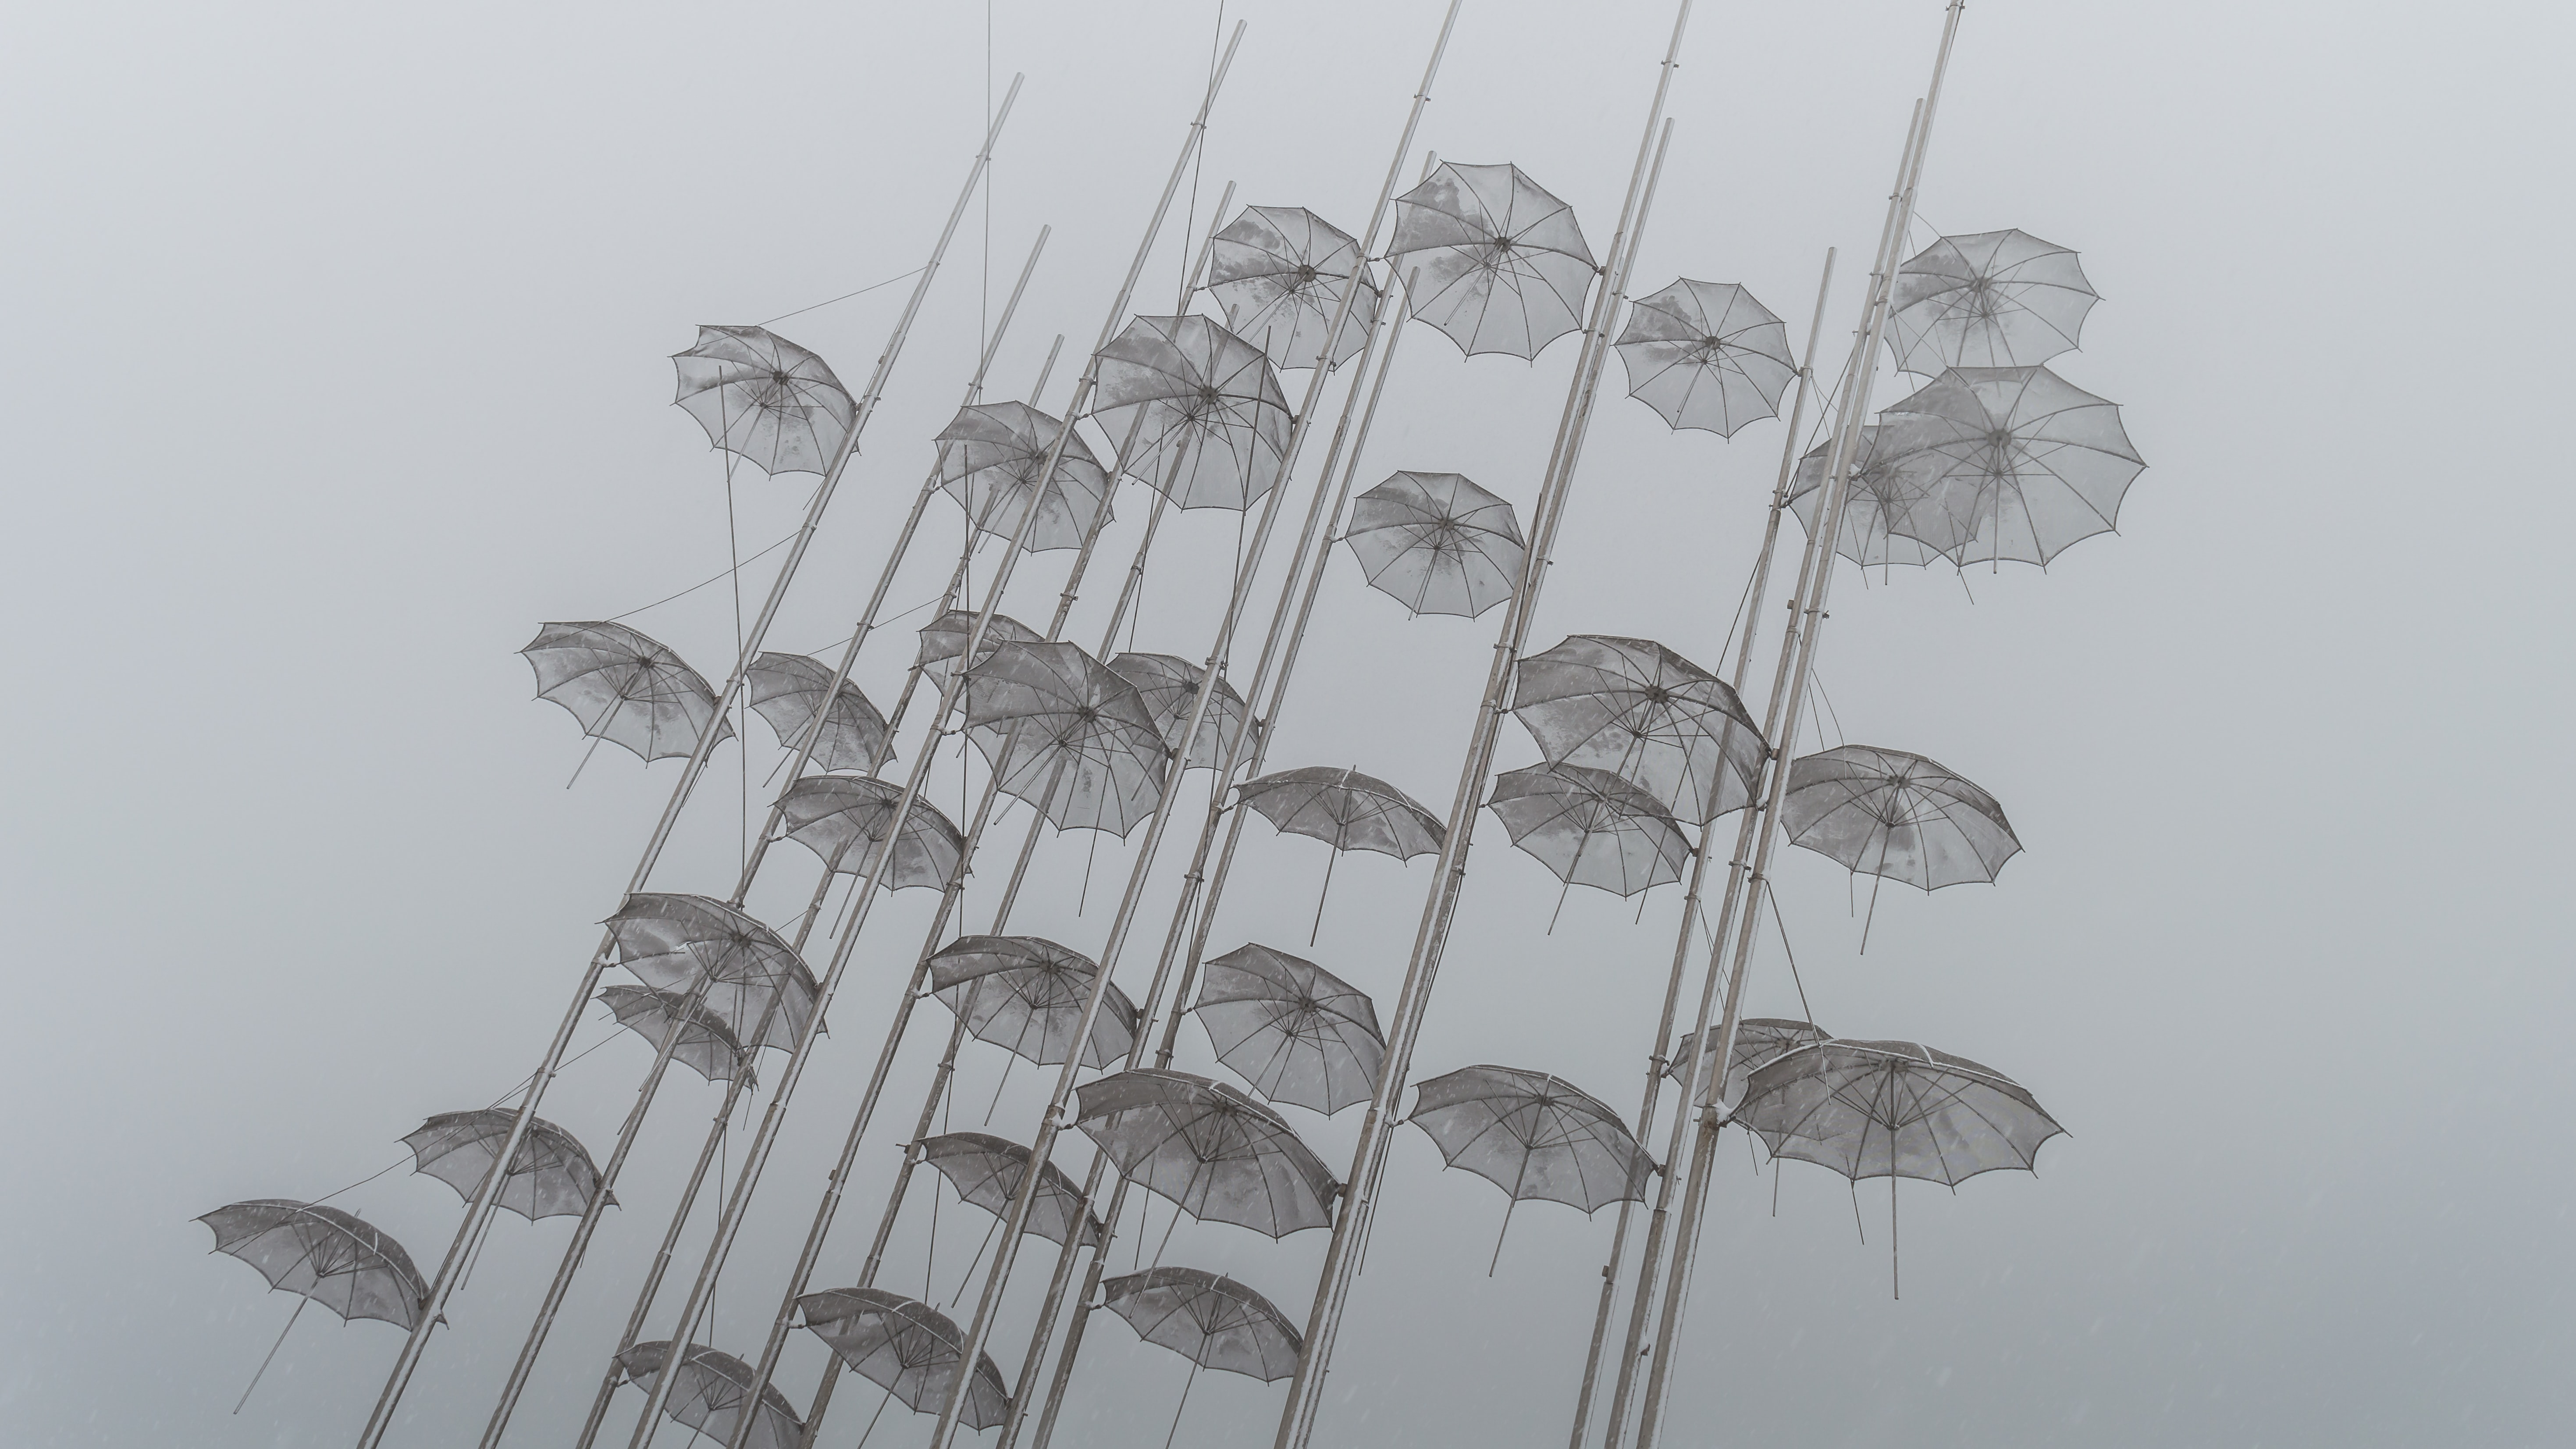 Dozen of transparent umbrellas on the flag poles at New Beach Thessaloniki